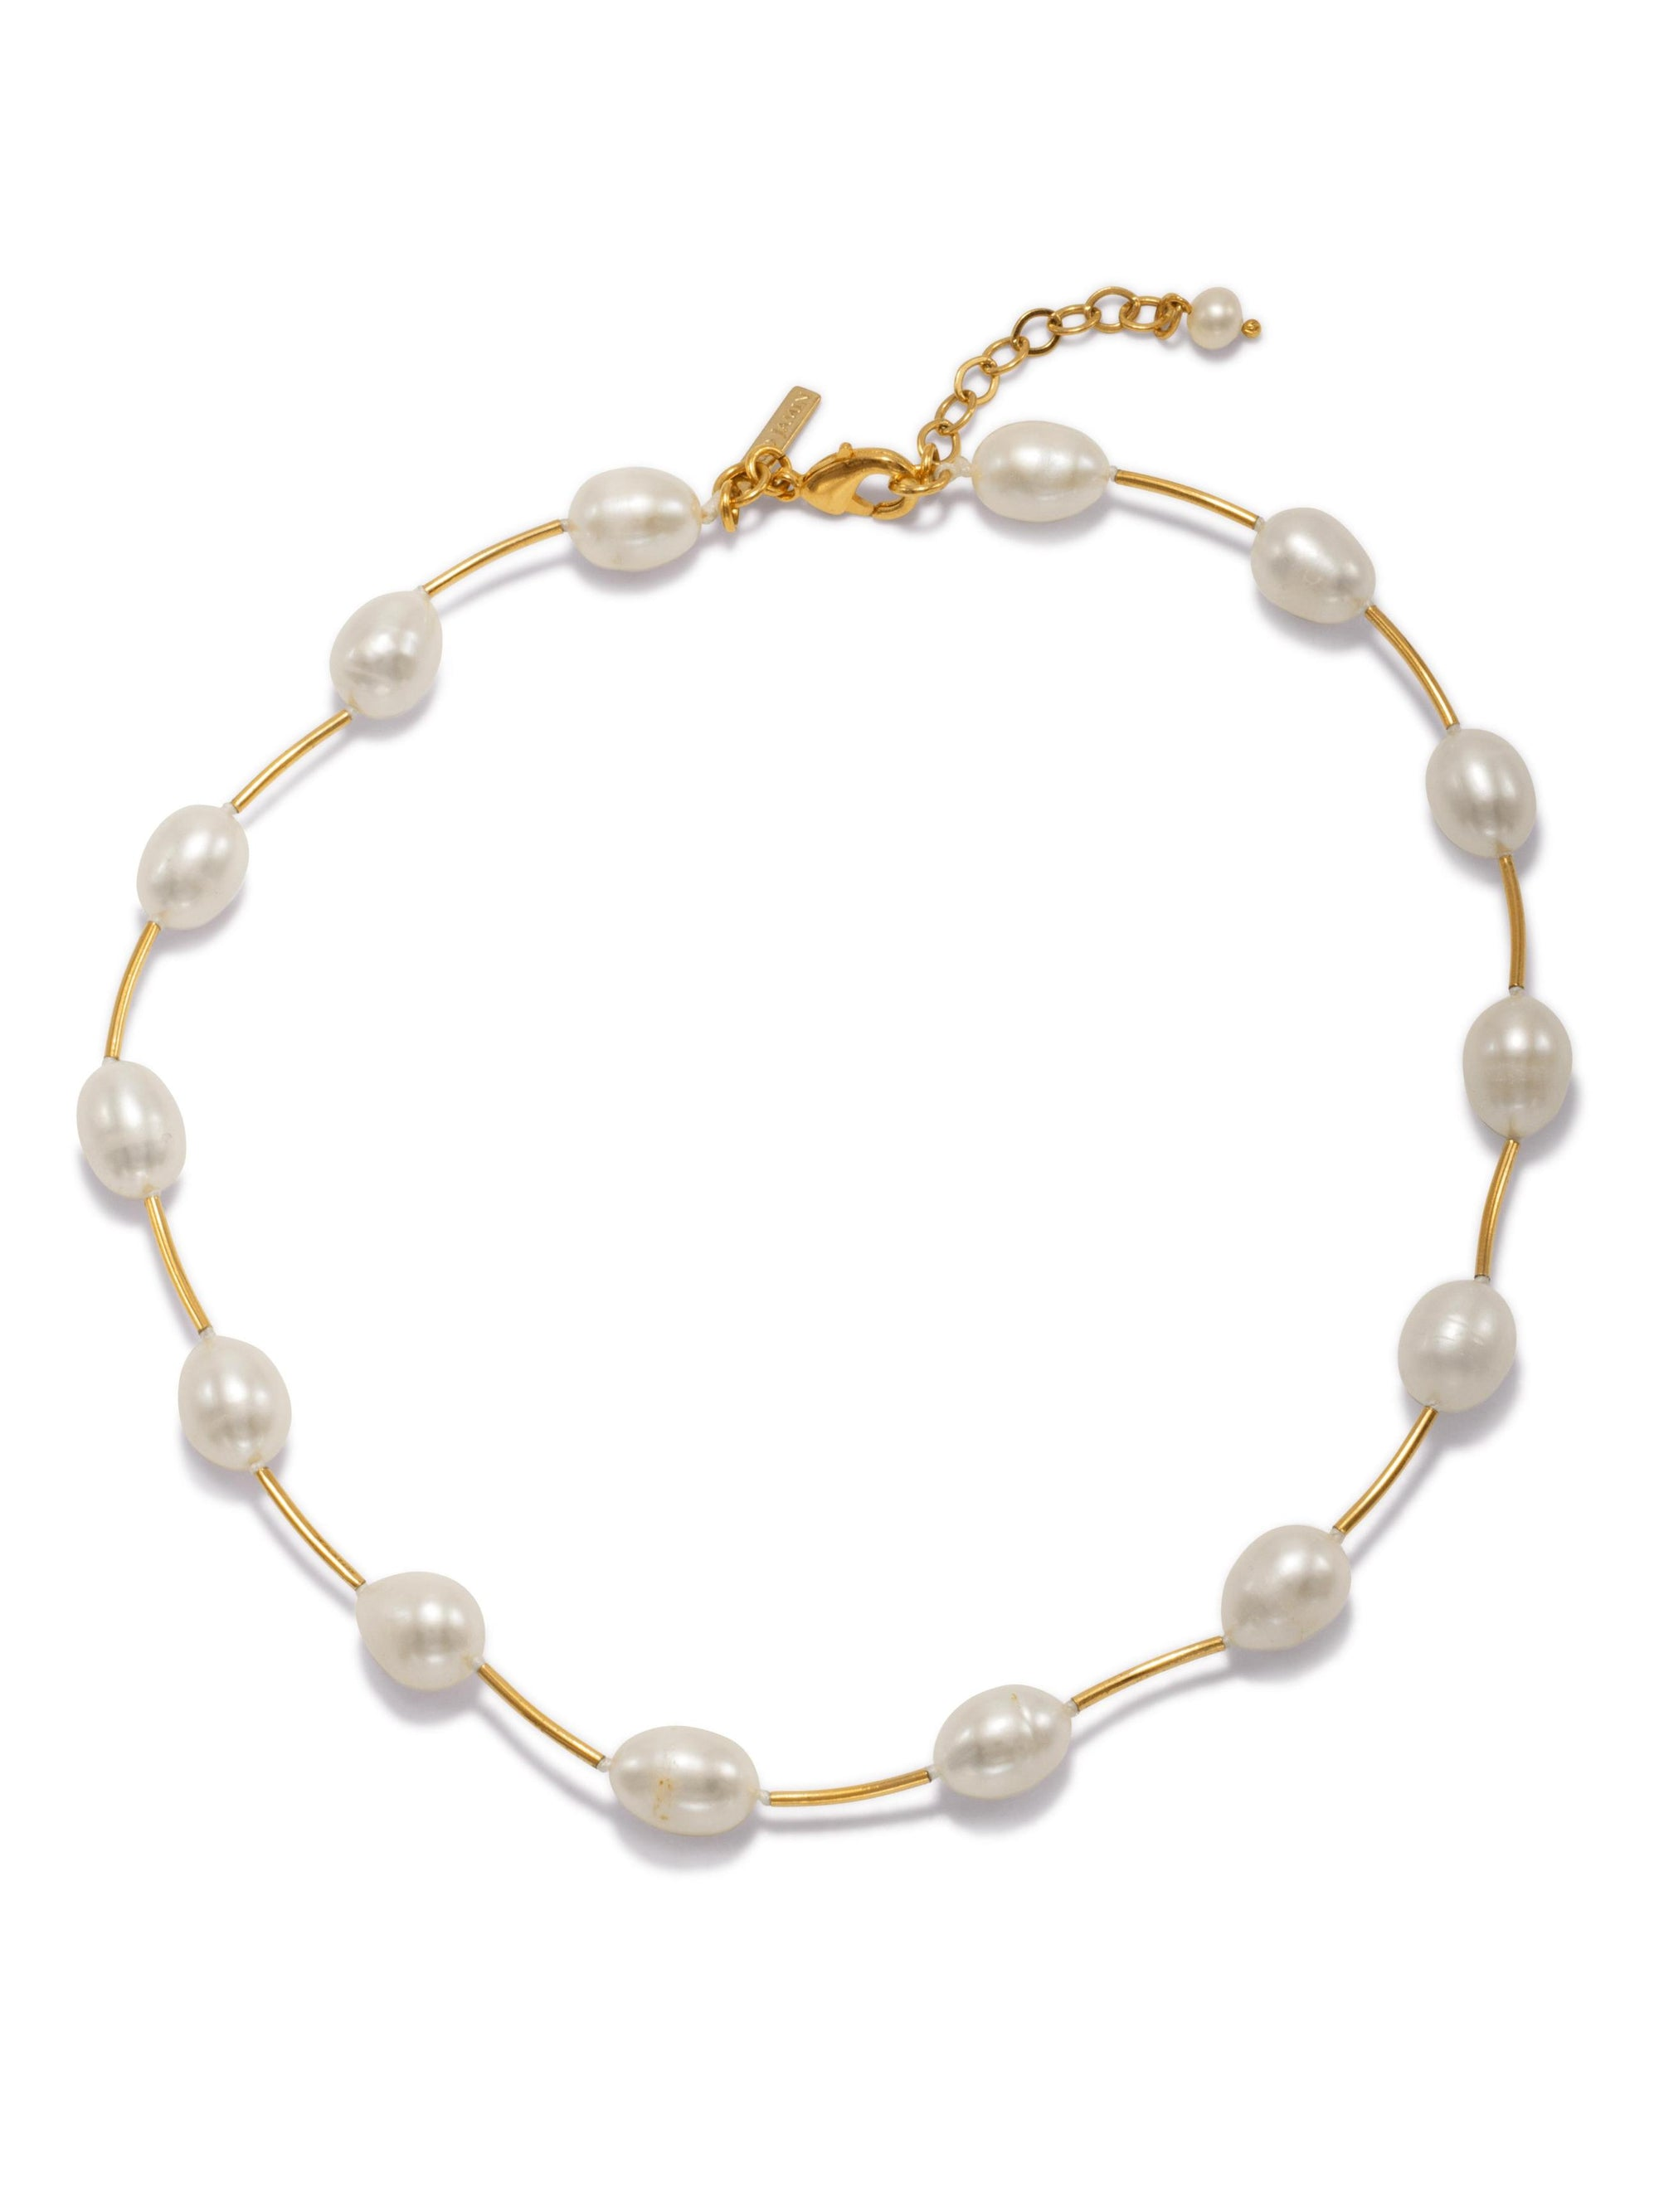 Claire Pearl and Gold Necklace-Necklaces-JAREDJAMIN Jewelry Online-JAREDJAMIN - Fashion Jewelry & Accessories